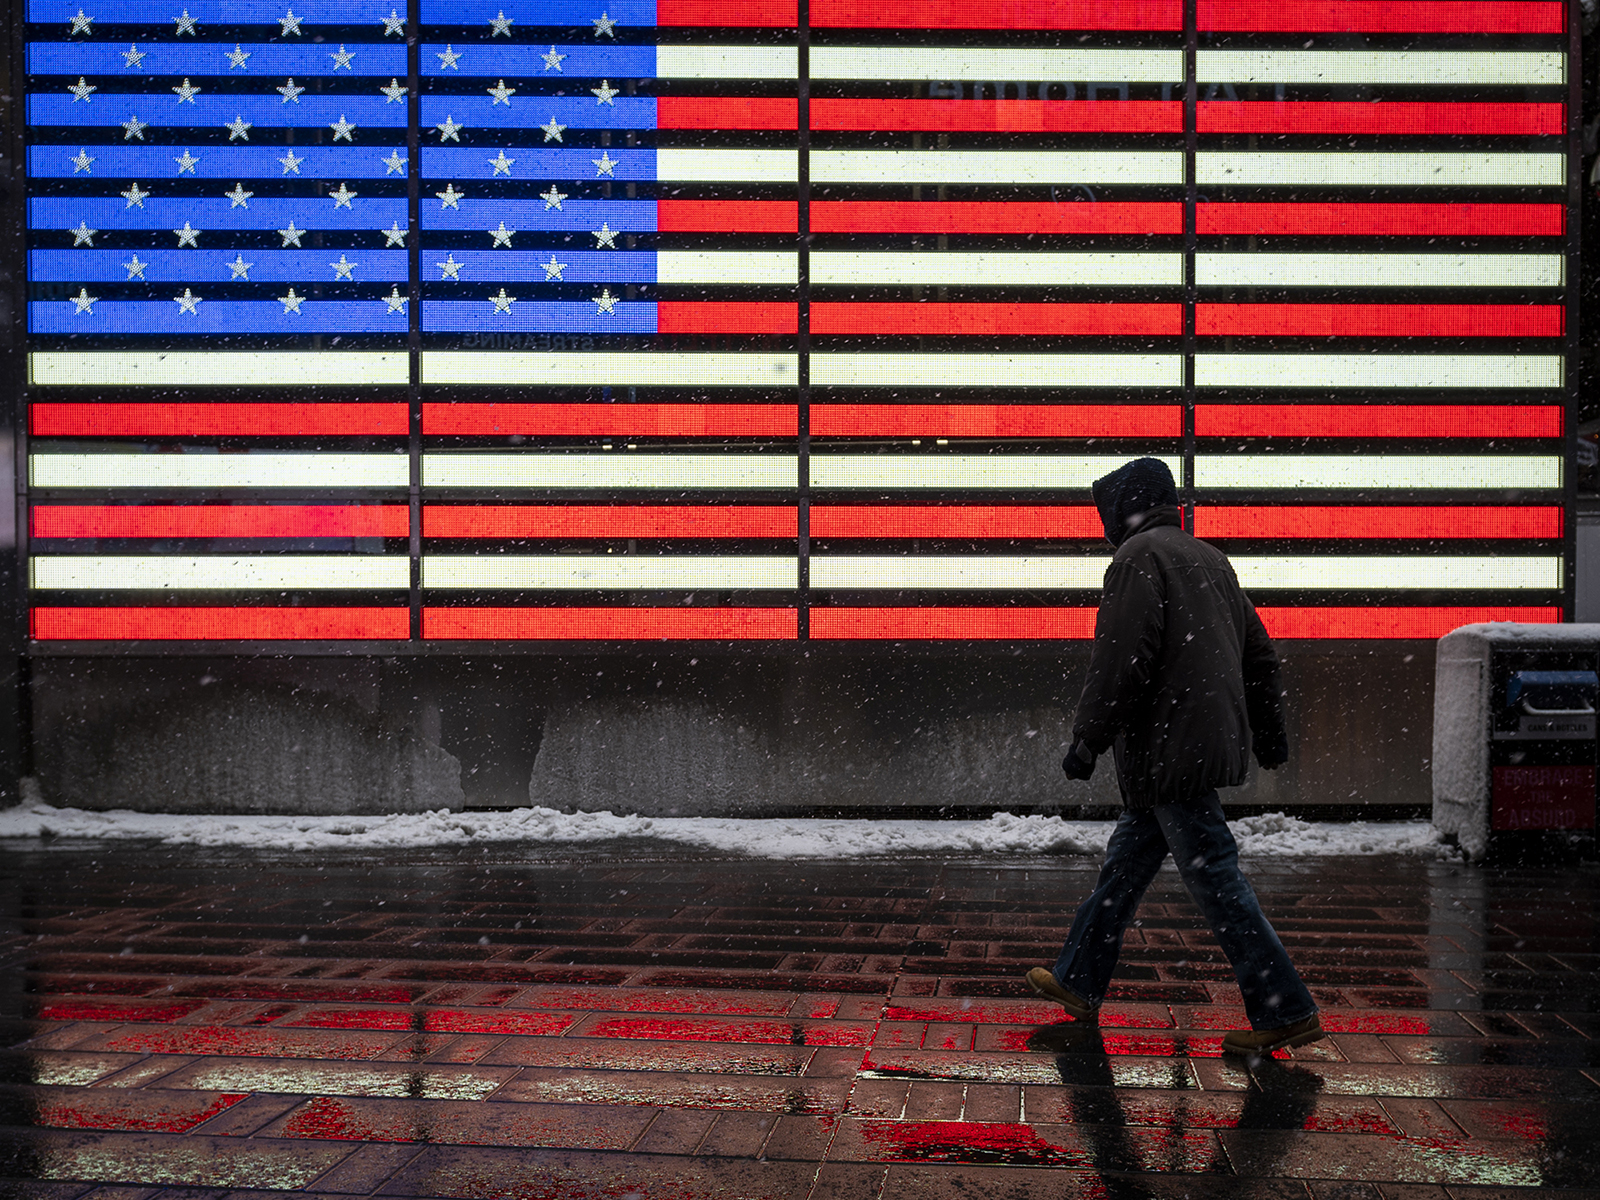 A pedestrian walks through Times Square during a winter storm in New York on Friday, February 19.